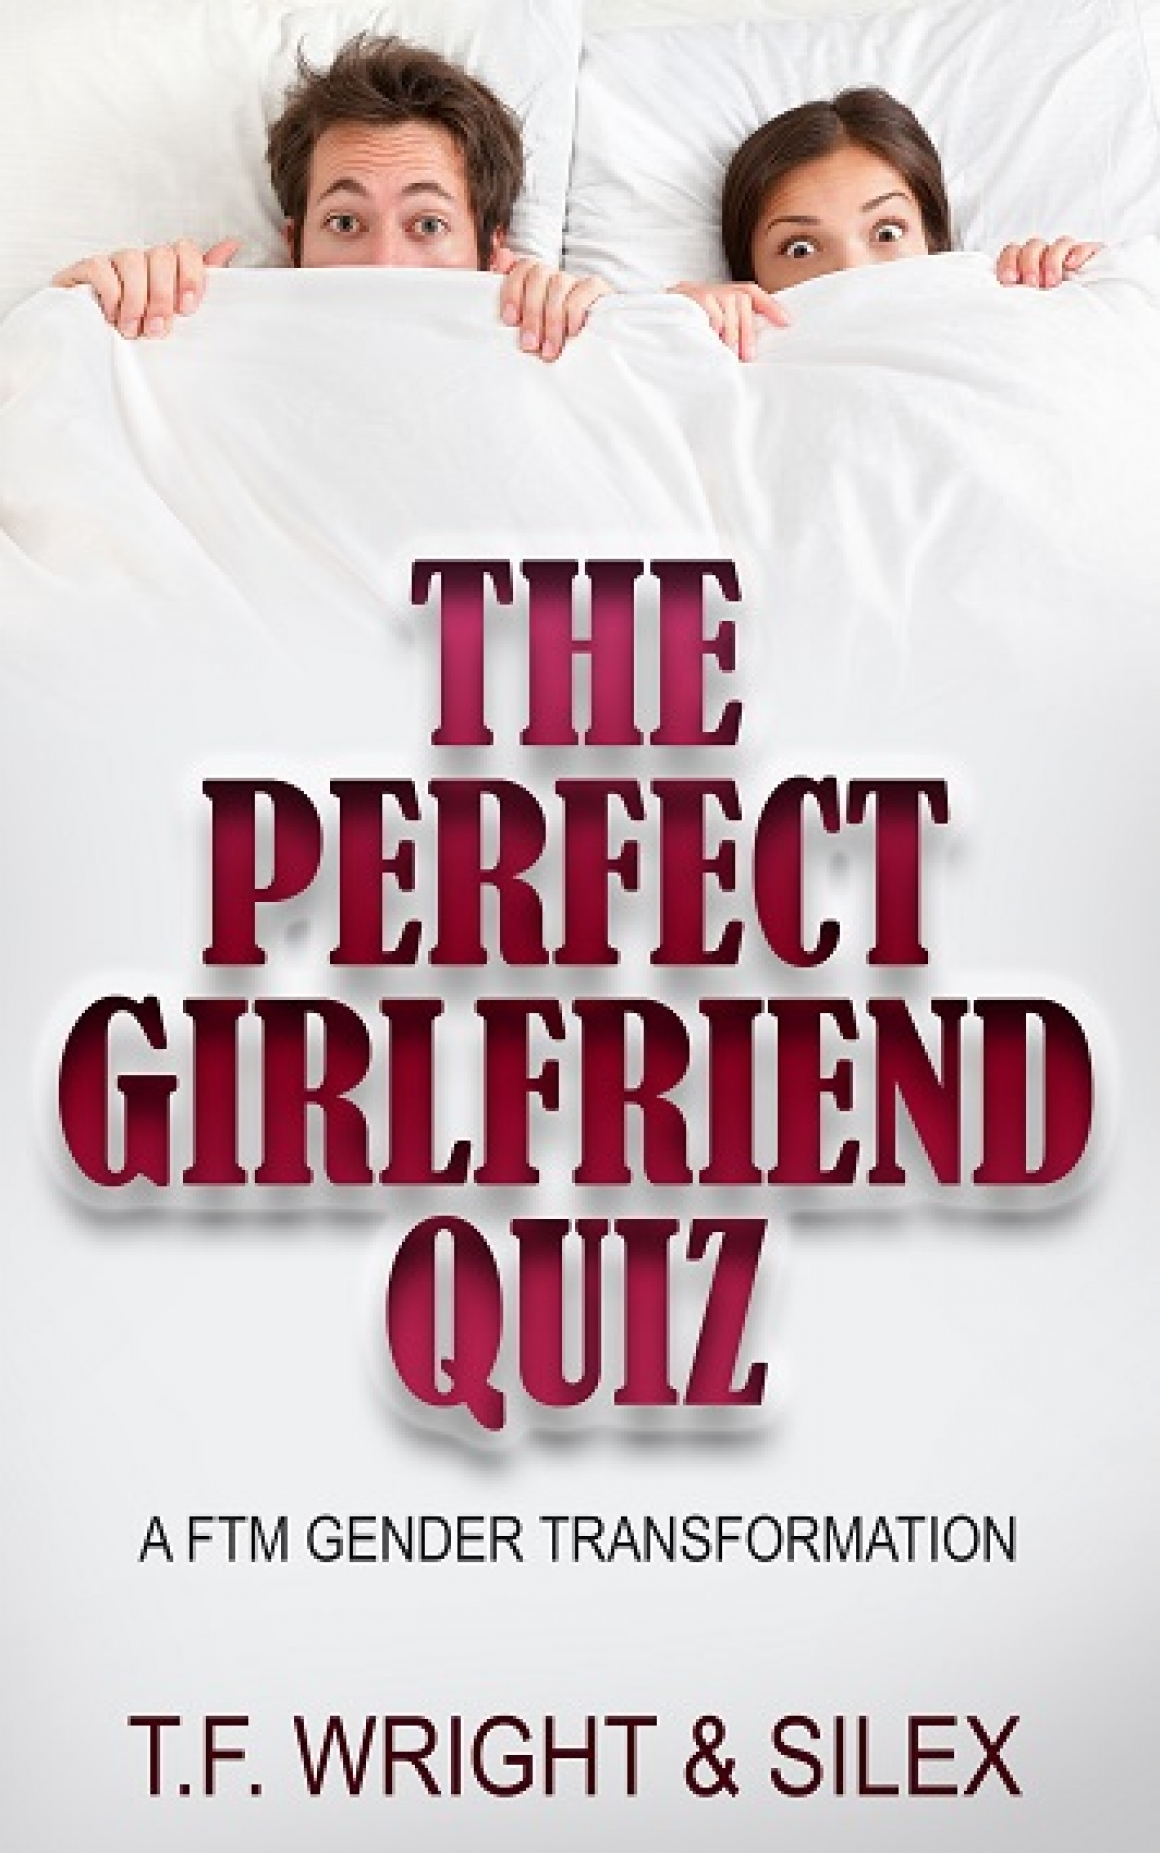 My Transformation Stories - The Perfect Girlfriend Quiz